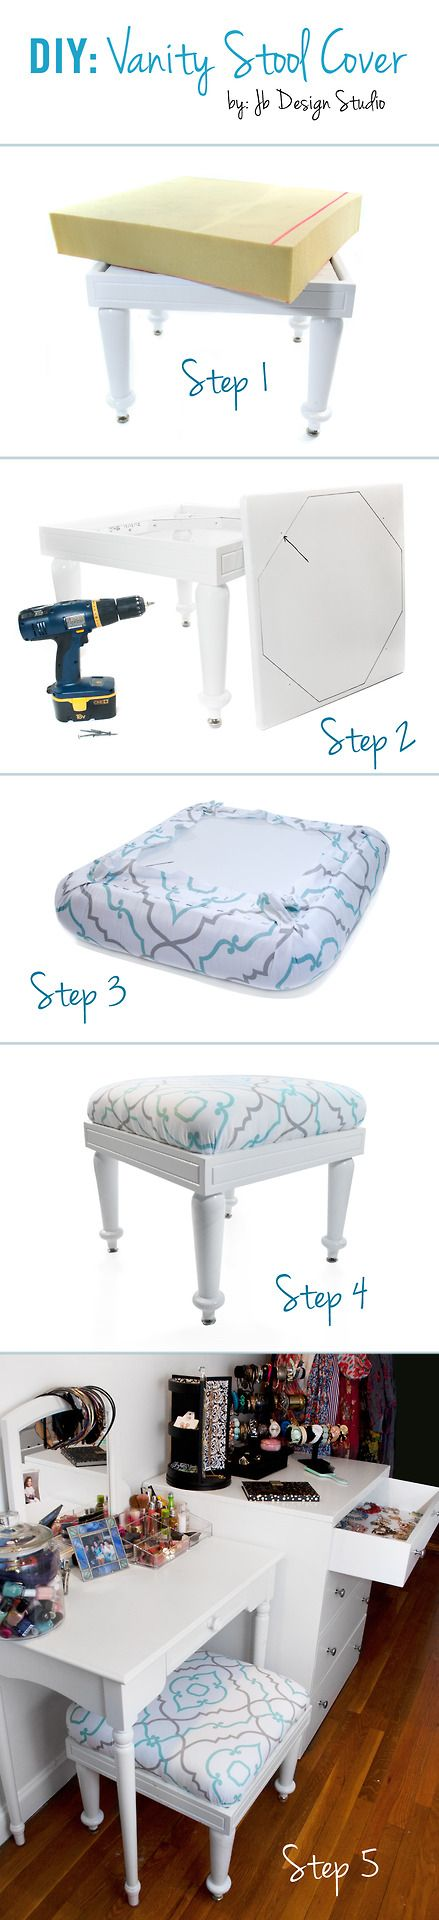 Diy vanity stool Bench Diy Vanity Stool Cover Step 1 Find Stool Or Have One Built thanks Dad Step 2 You Will Need Piece Of Wood To Staple The Fabric And Batting Over The Pinterest Diy Vanity Stool Cover Step 1 Find Stool Or Have One Built